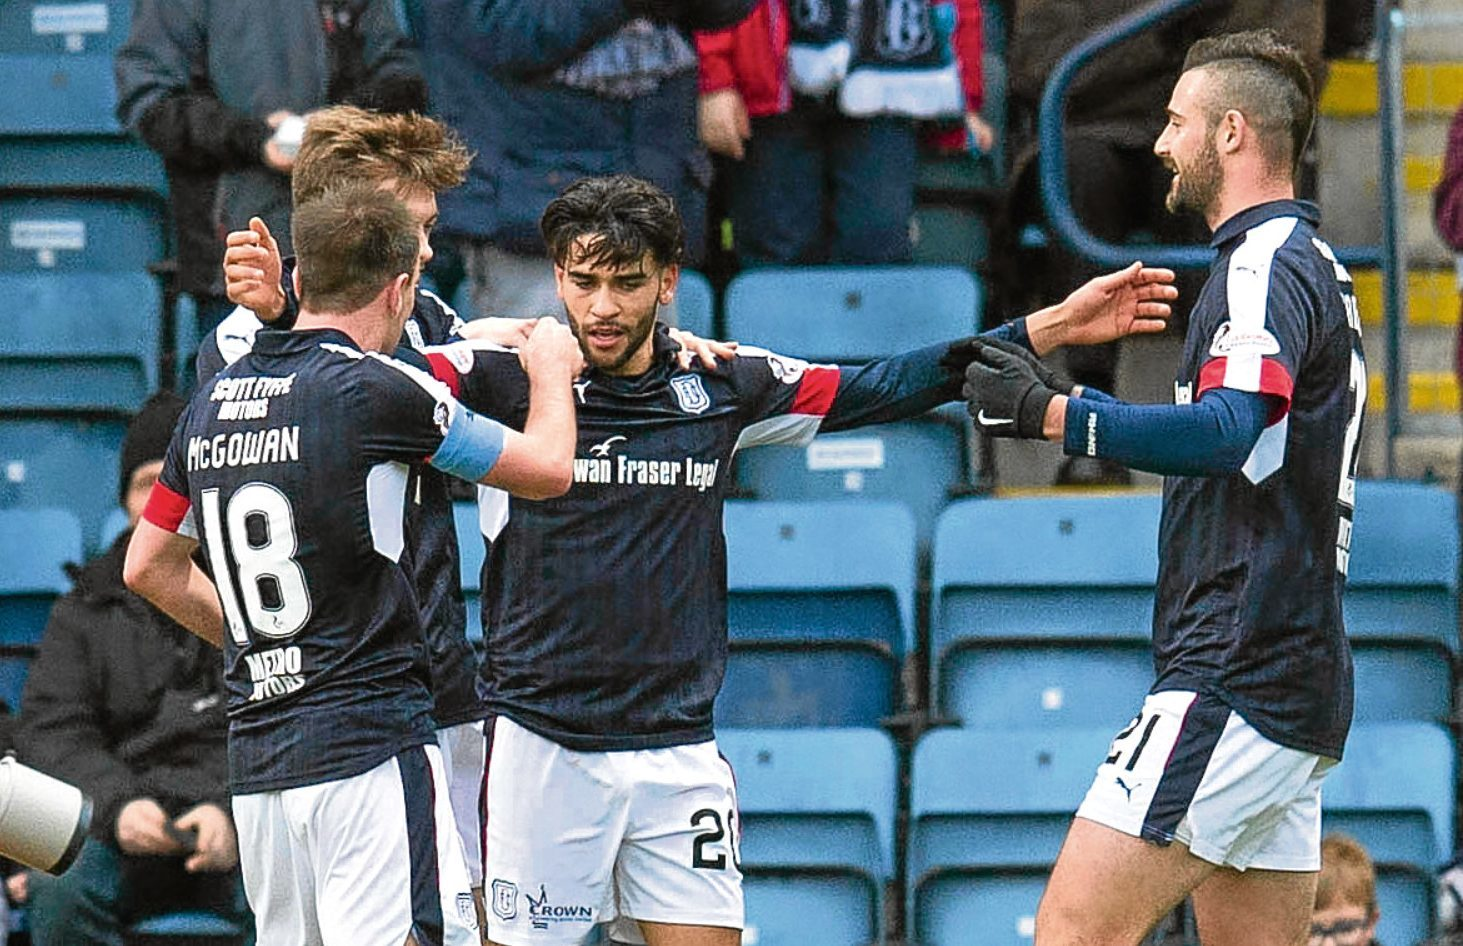 Faissal El Bakhtaoui (centre) celebrates opening the scoring during Dundee's 3-0 win at Dens against St Johnstone on Hogmanay. The Dark Blues will looking to collect at least a point next Saturday.